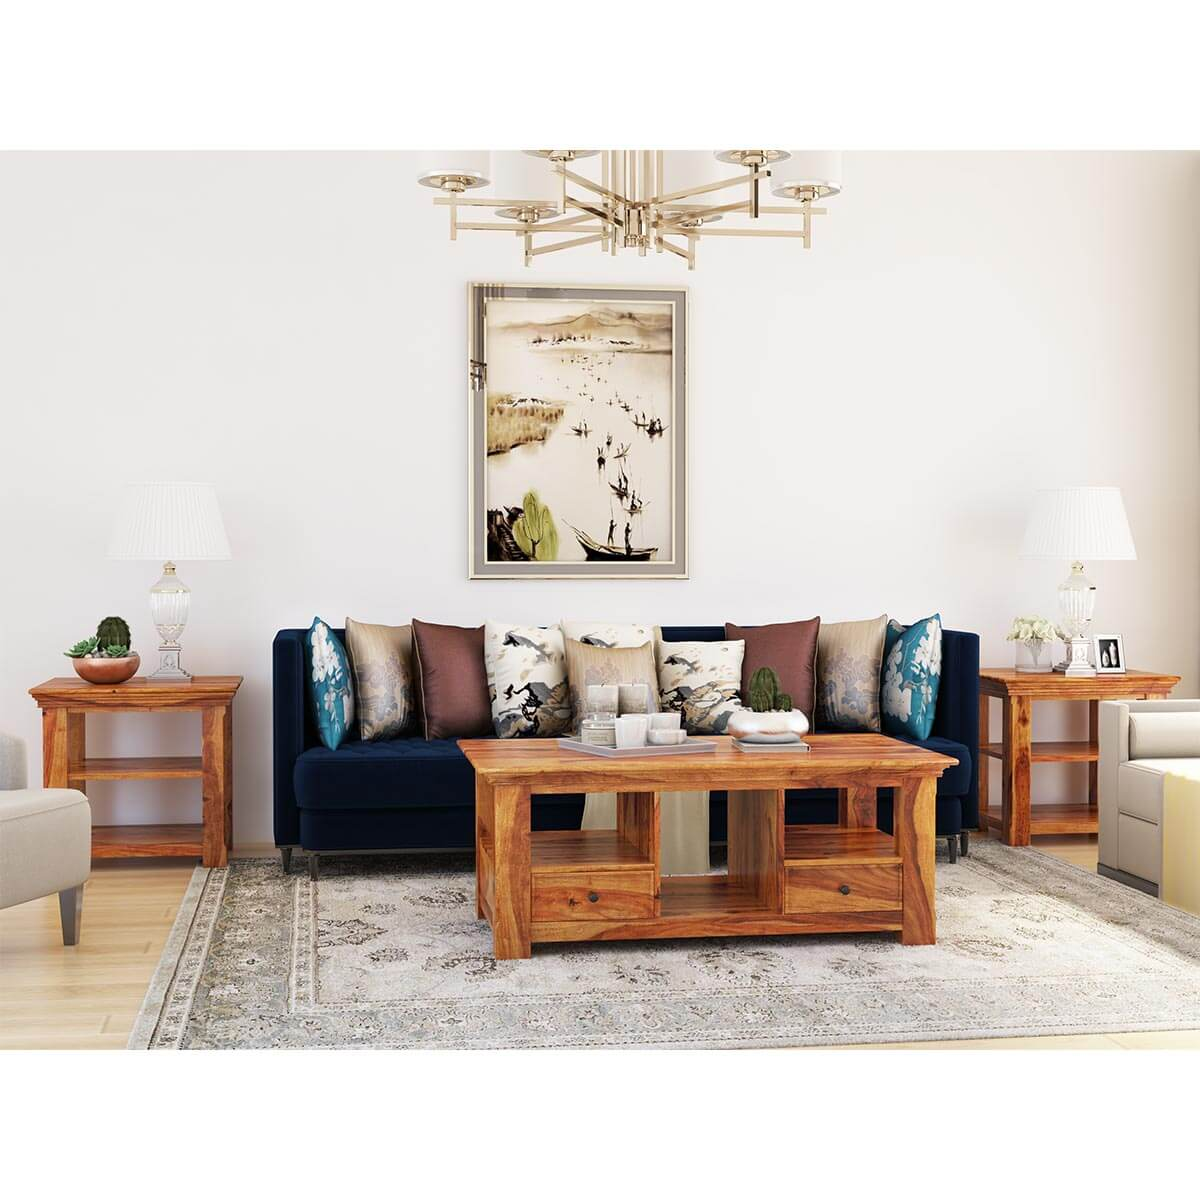 Priscus Midcentury Solid Wood 3 Piece Coffee Table Set With Drawers